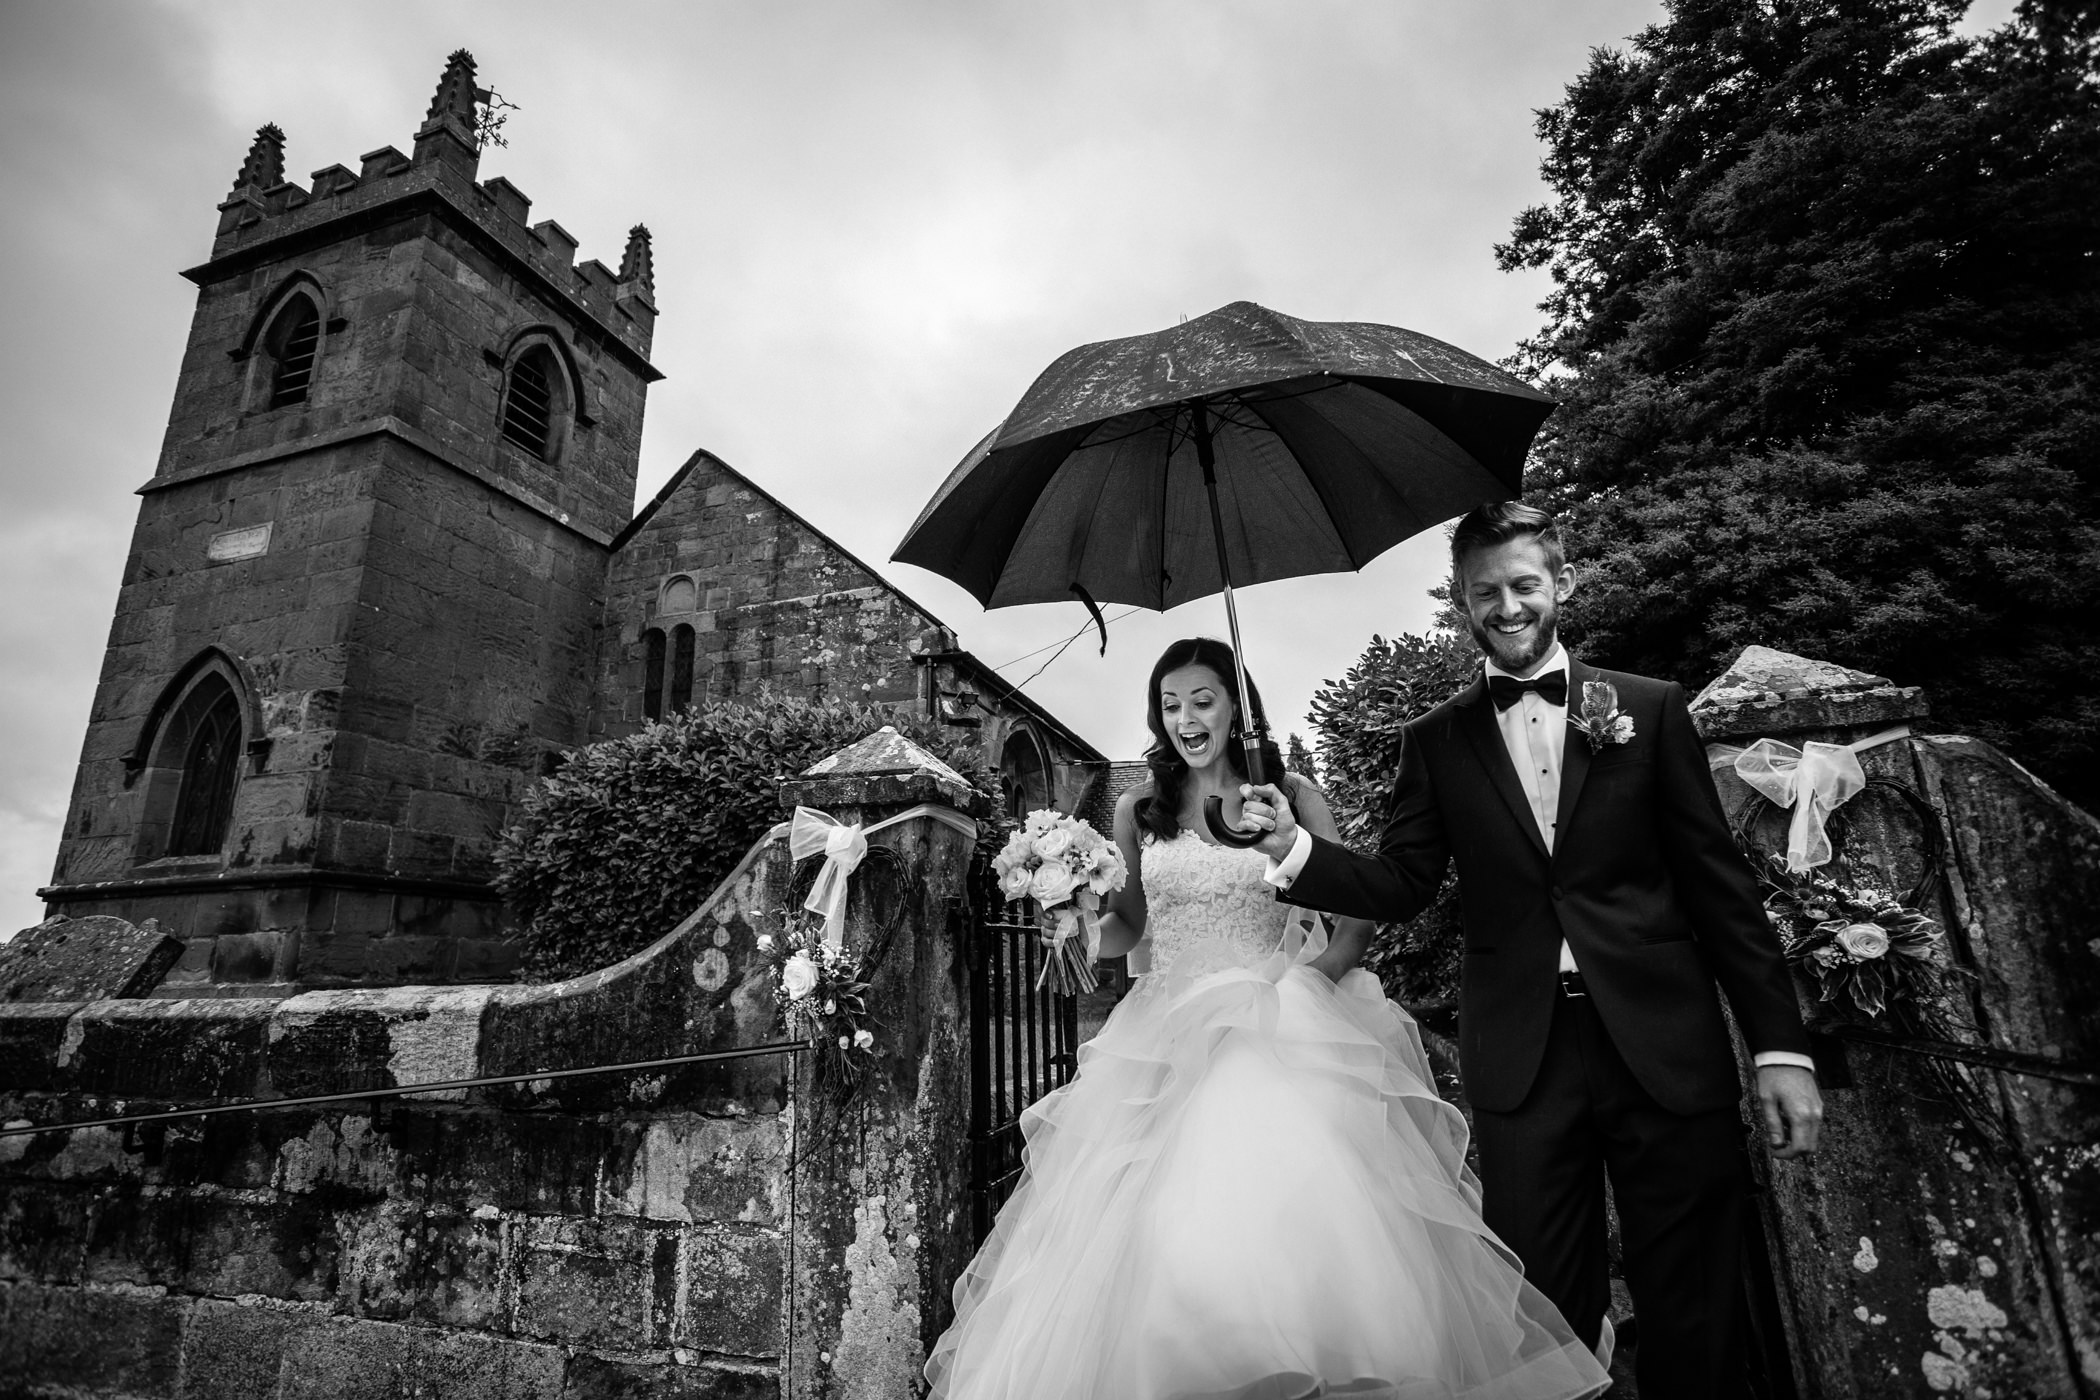 sansom-photography-becky-david-cheshire-wedding-4545-2